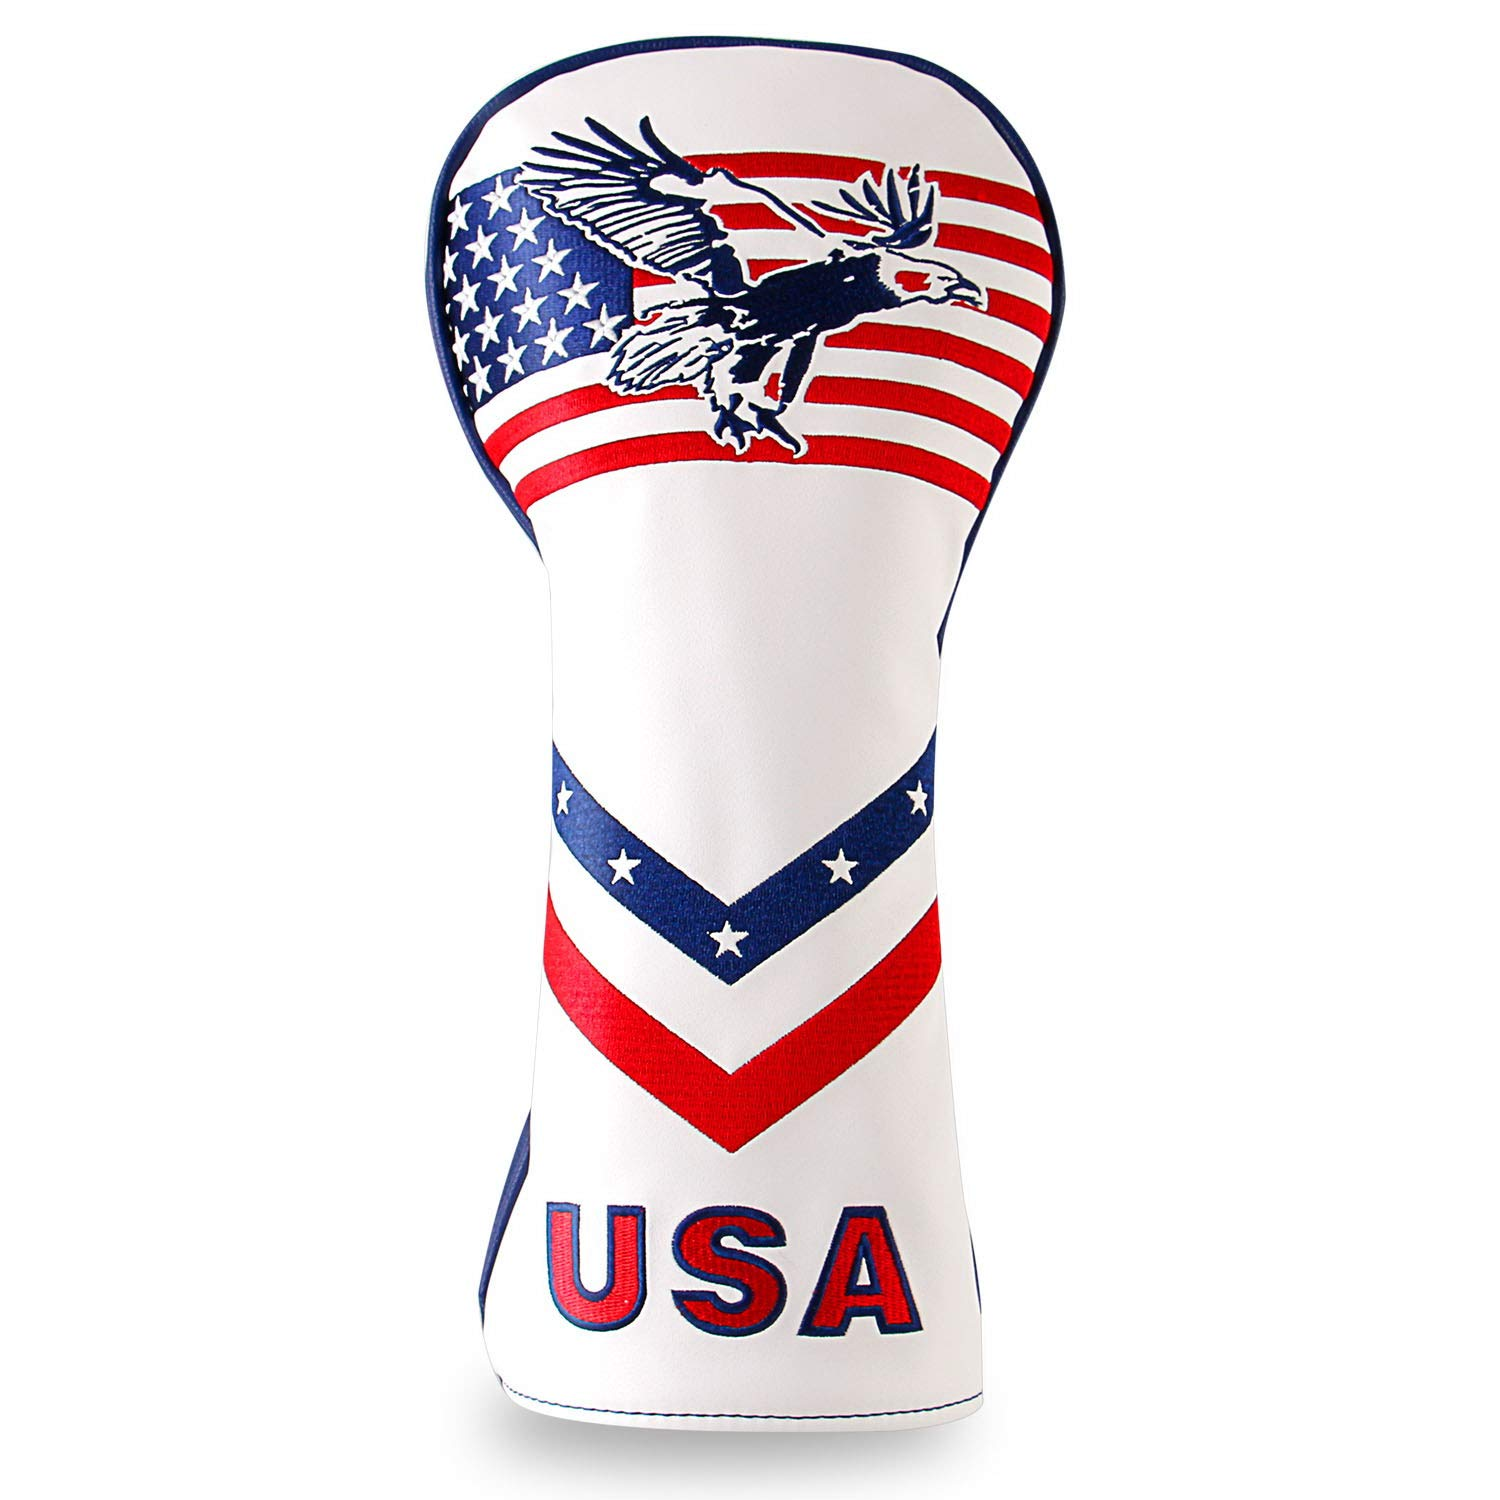 Montela Golf USA Eagle Driver Covers for 460cc Golf Headcovers Callaway Titleist Taylormade